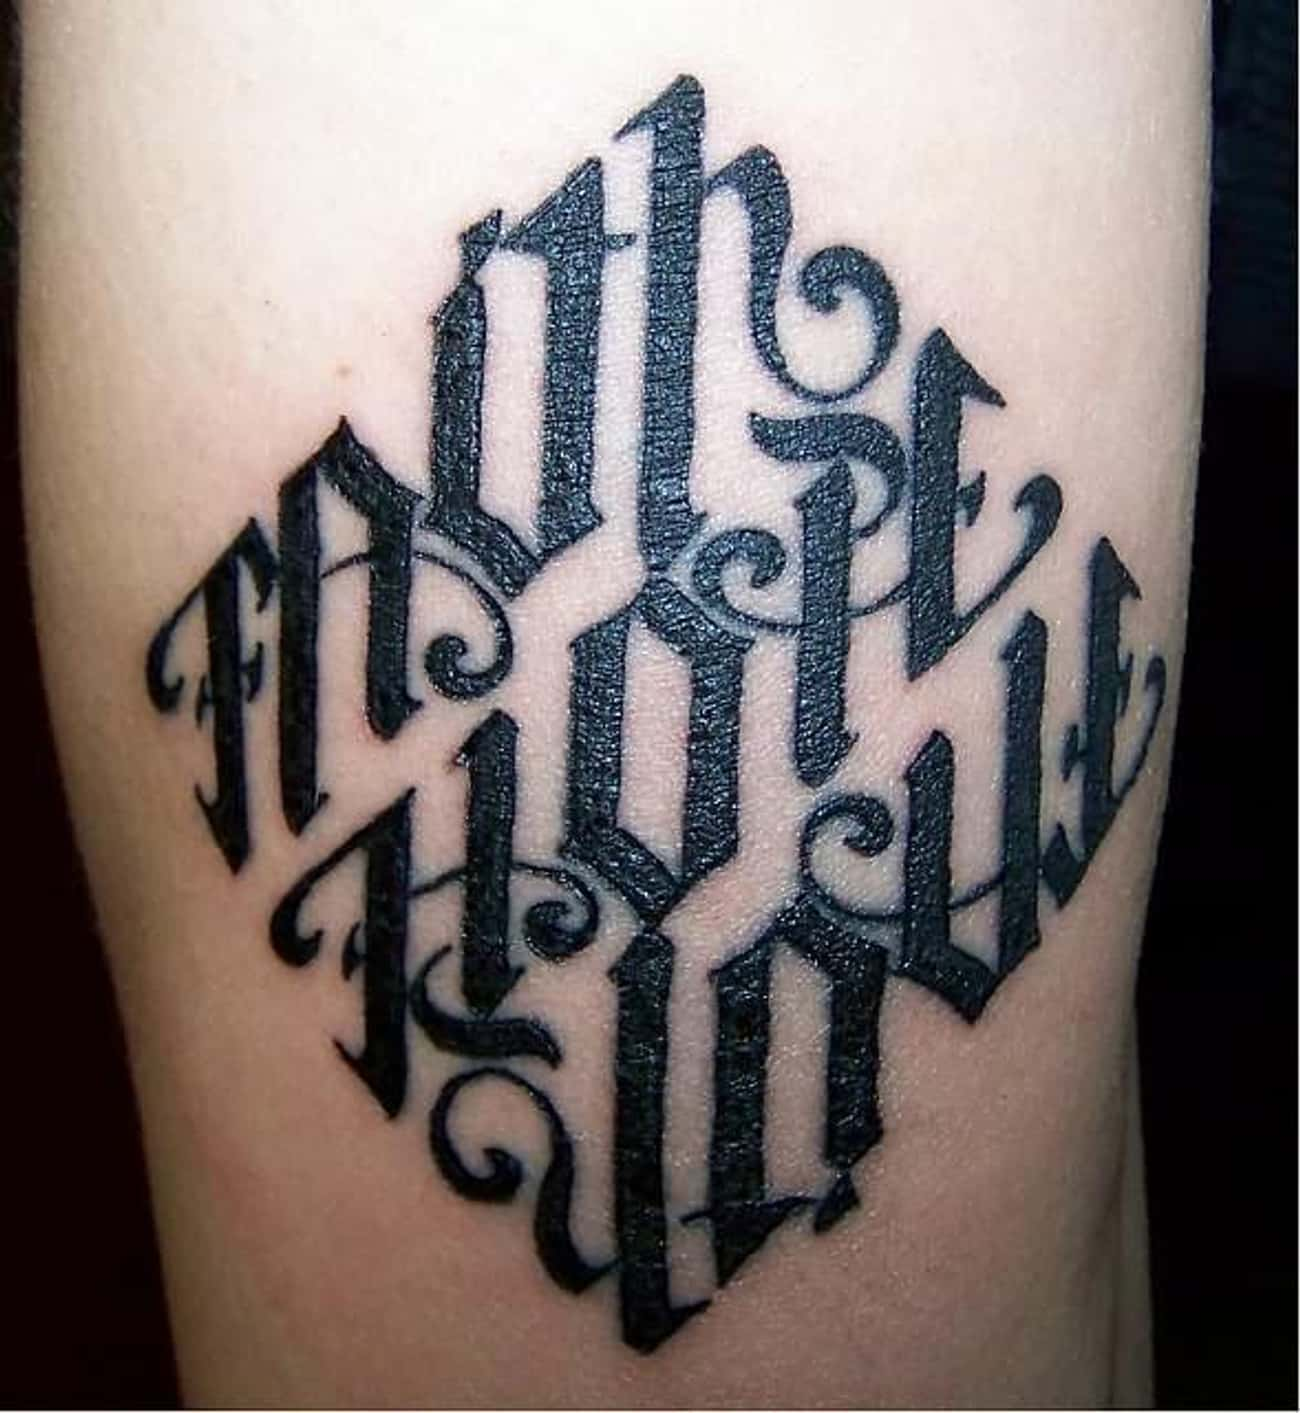 The Rare Triple Ambigram: Fait is listed (or ranked) 2 on the list 18 Awesome Ambigram Tattoos That'll Make You Look Twice